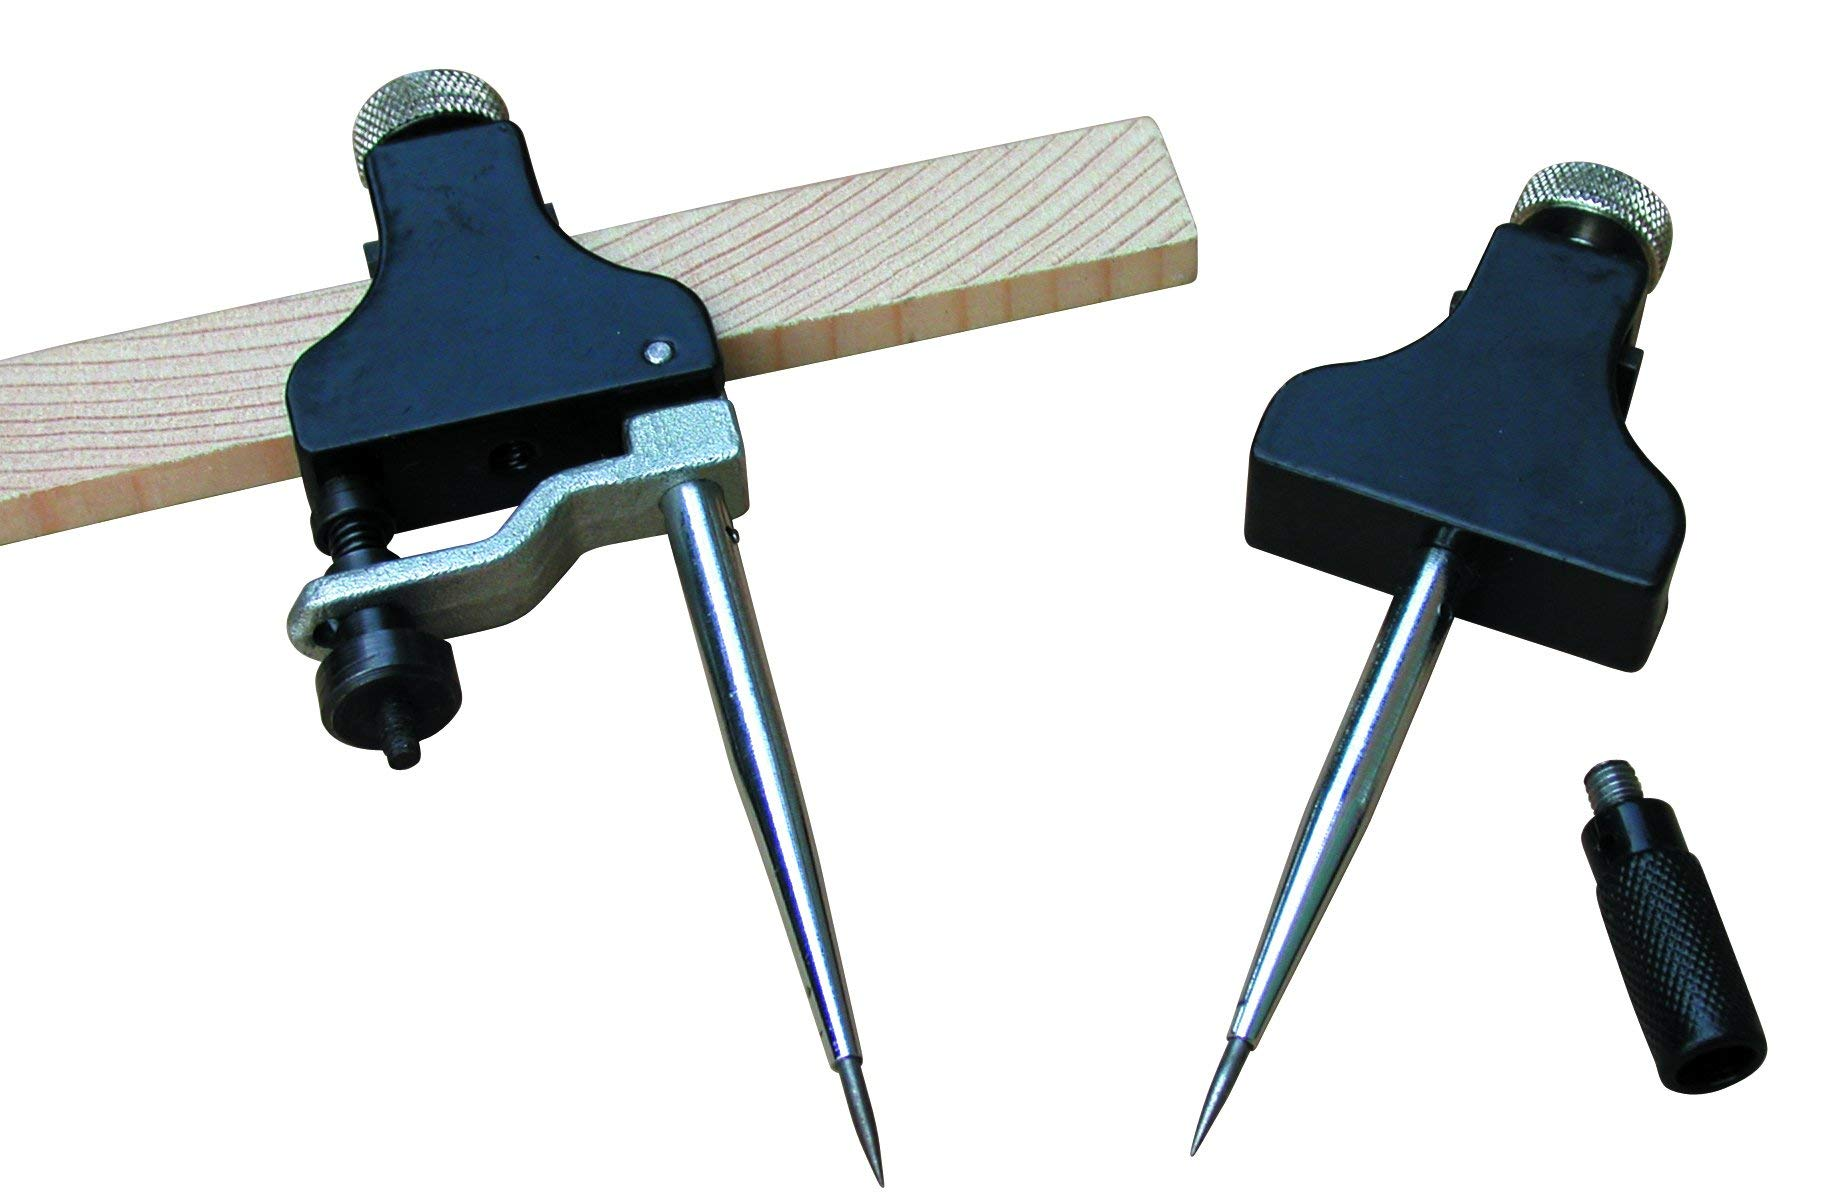 Trammel Points Heads Beam Compass with Hardened Points, Fine Adjustment and Pencil Holder TP by Taylor Toolworks (Image #1)